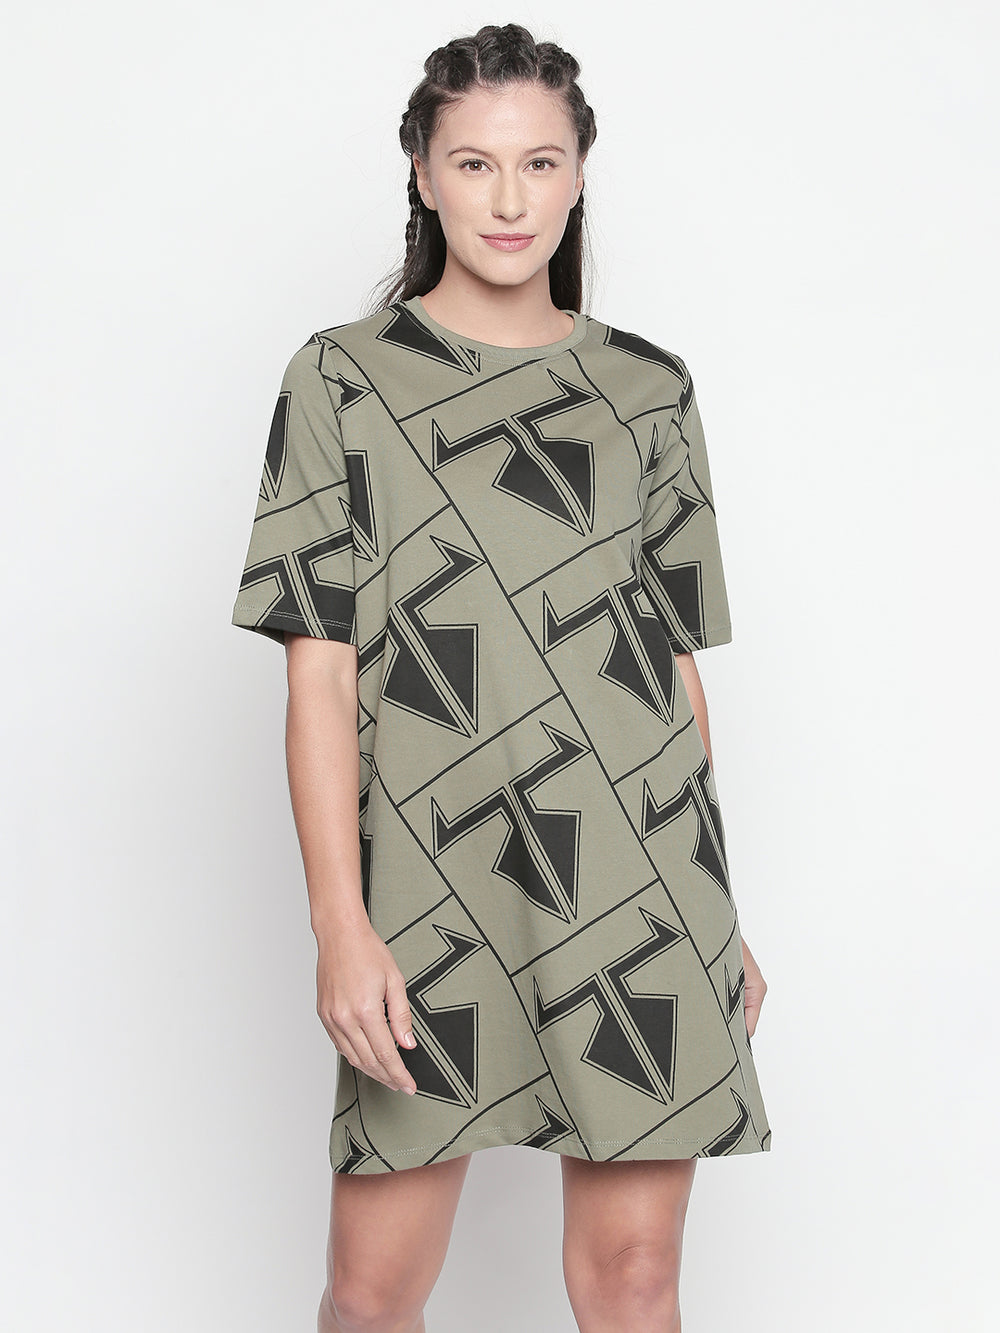 Olive Disrupt Logo Graphic Print Dress